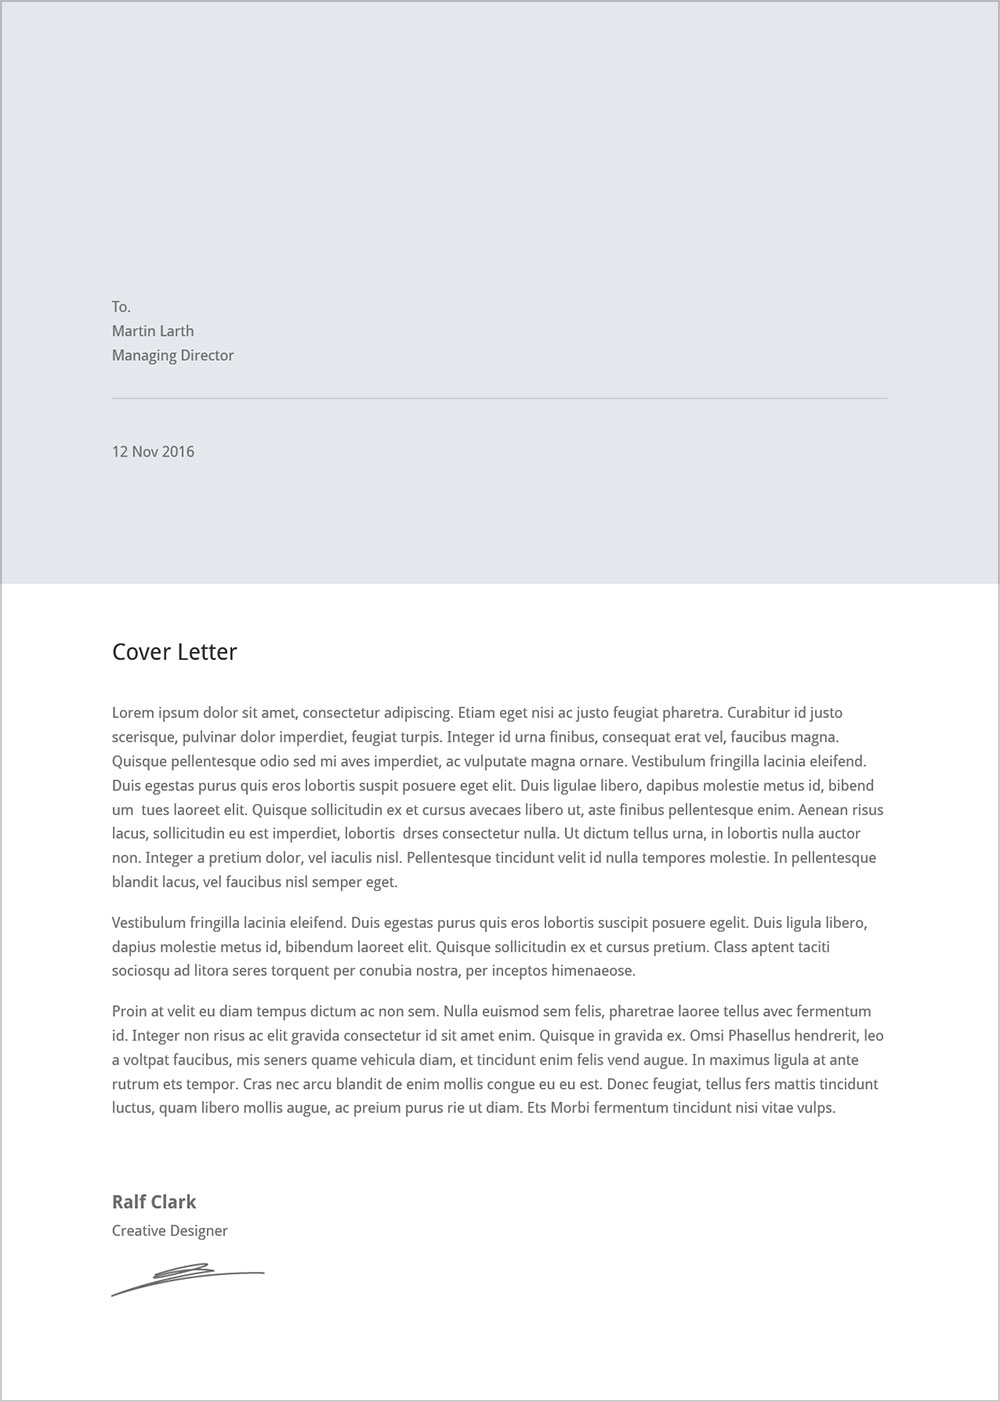 Free-Professional-Resume-&-Cover-Letter--in-Illustrator-Ai-Format-03